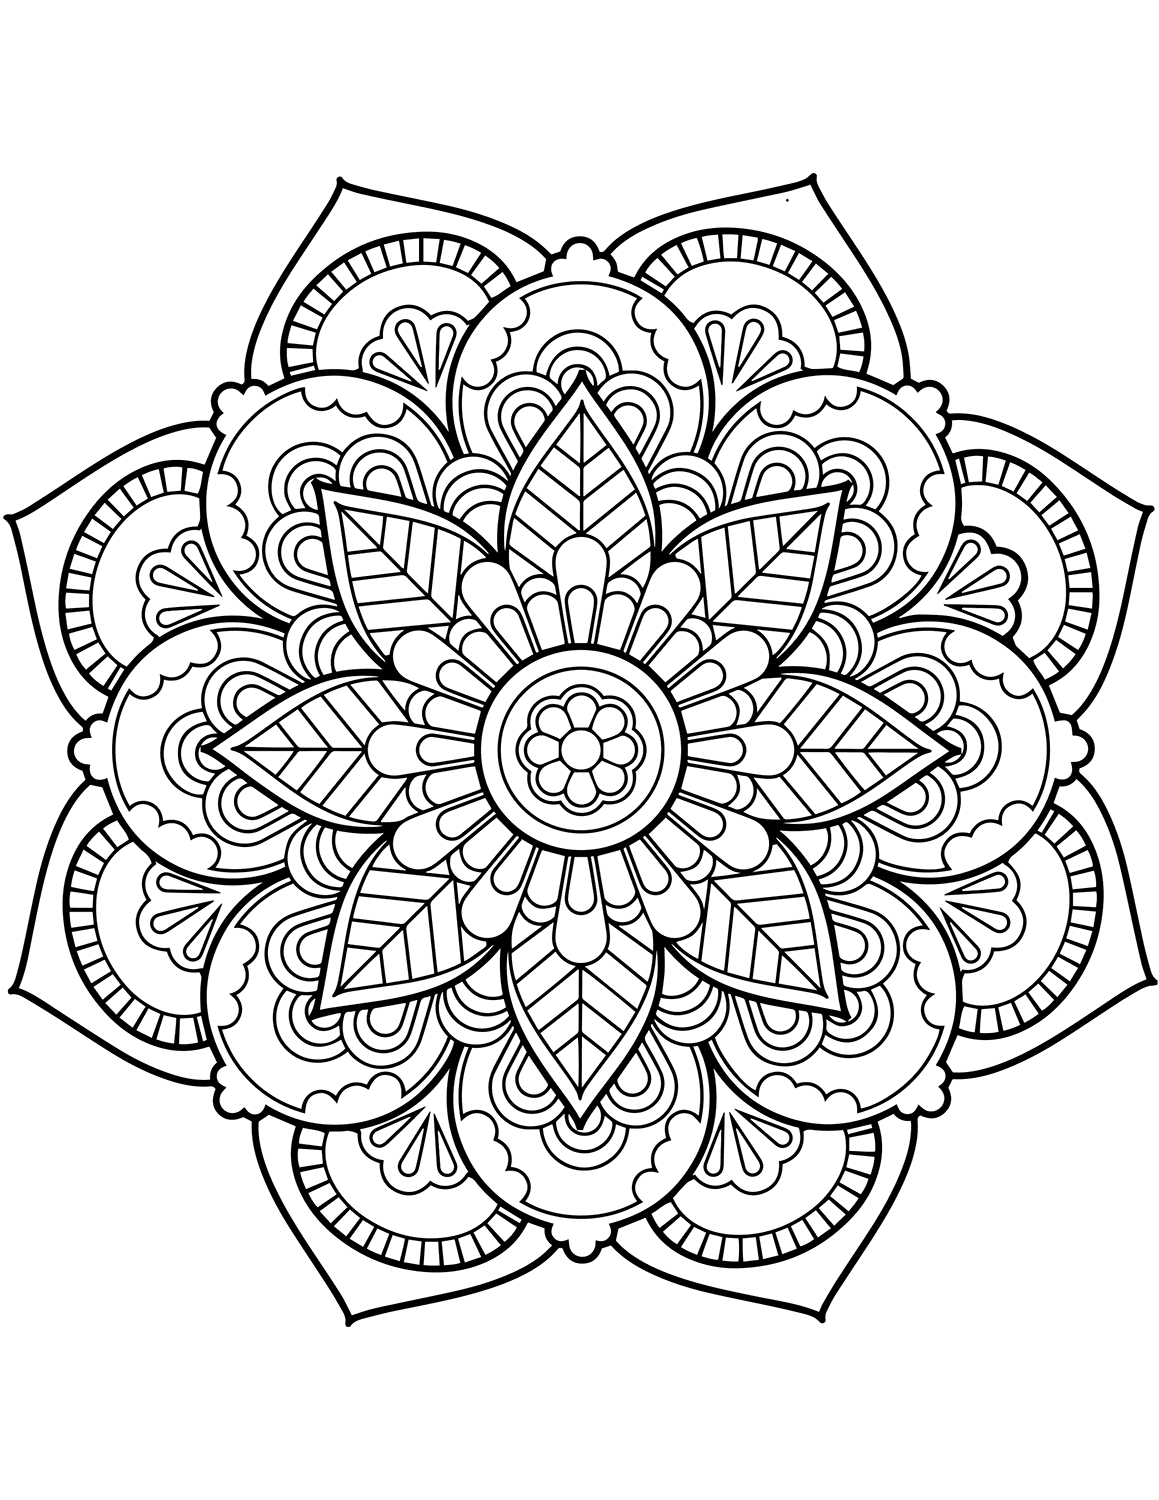 mandela pictures to color creative haven butterfly mandelas coloring book by jo mandela pictures to color